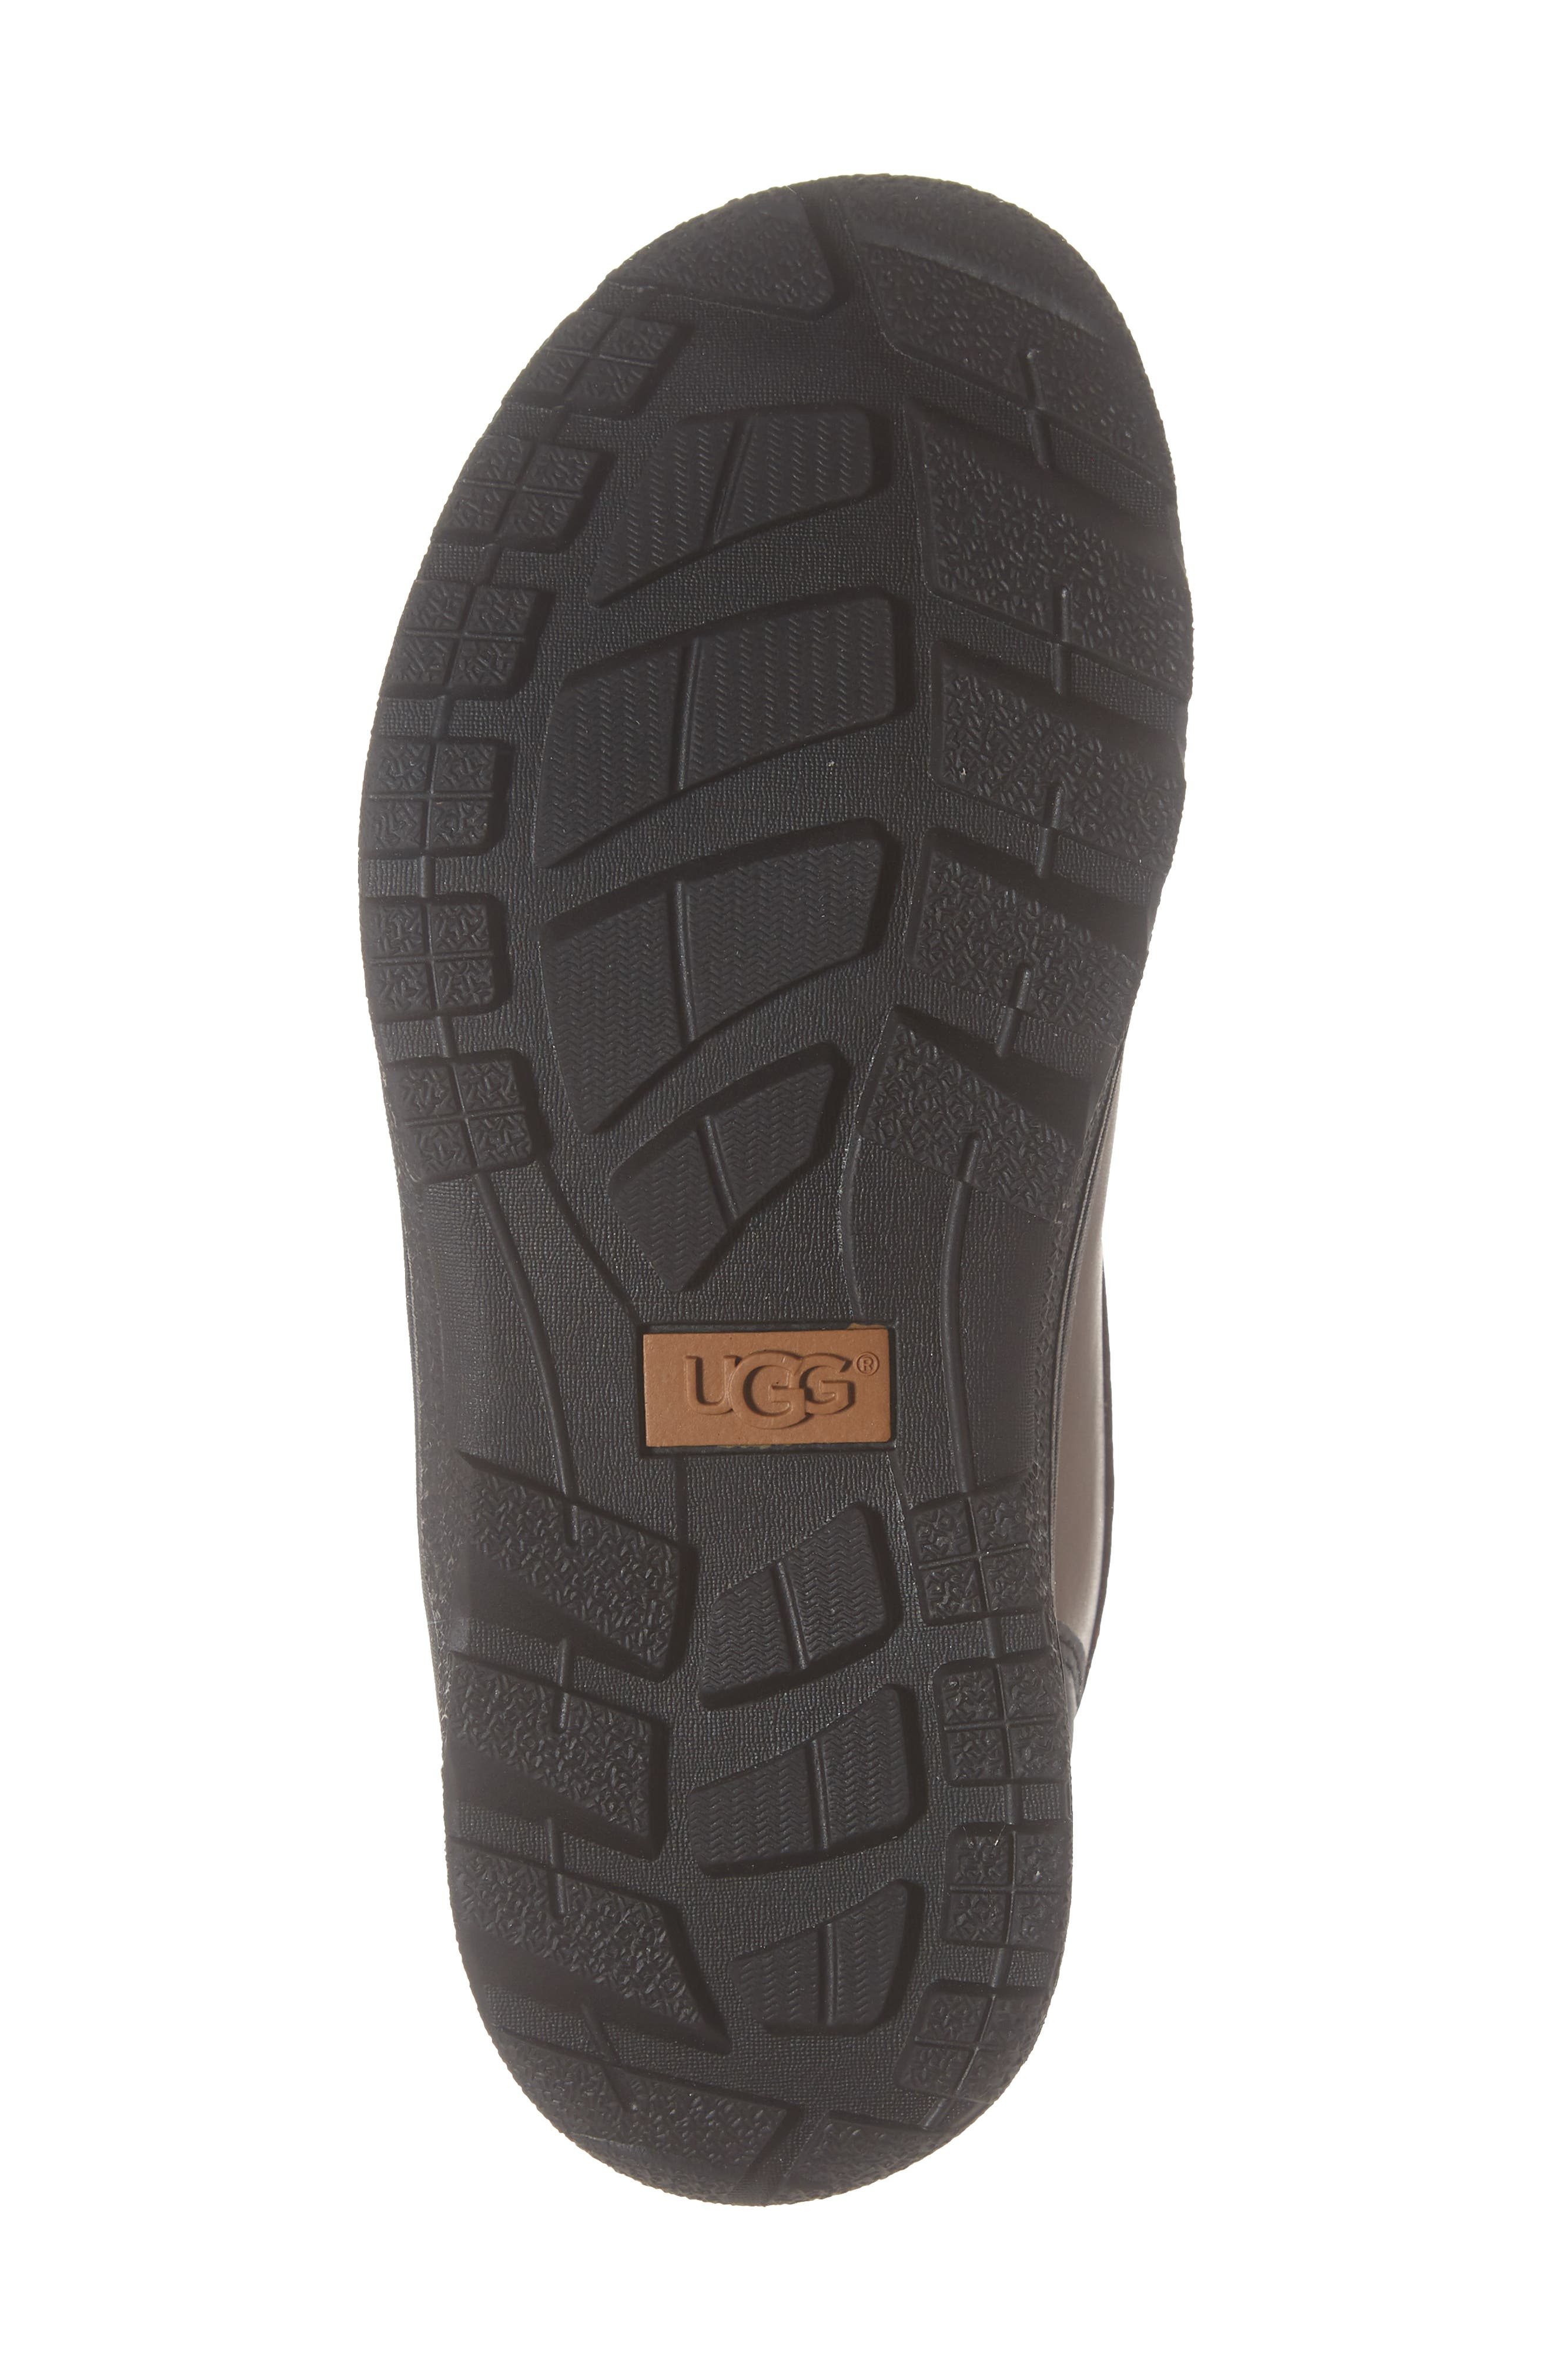 UGG<SUP>®</SUP>, Butte II Waterproof Winter Boot, Alternate thumbnail 6, color, WORCHESTER